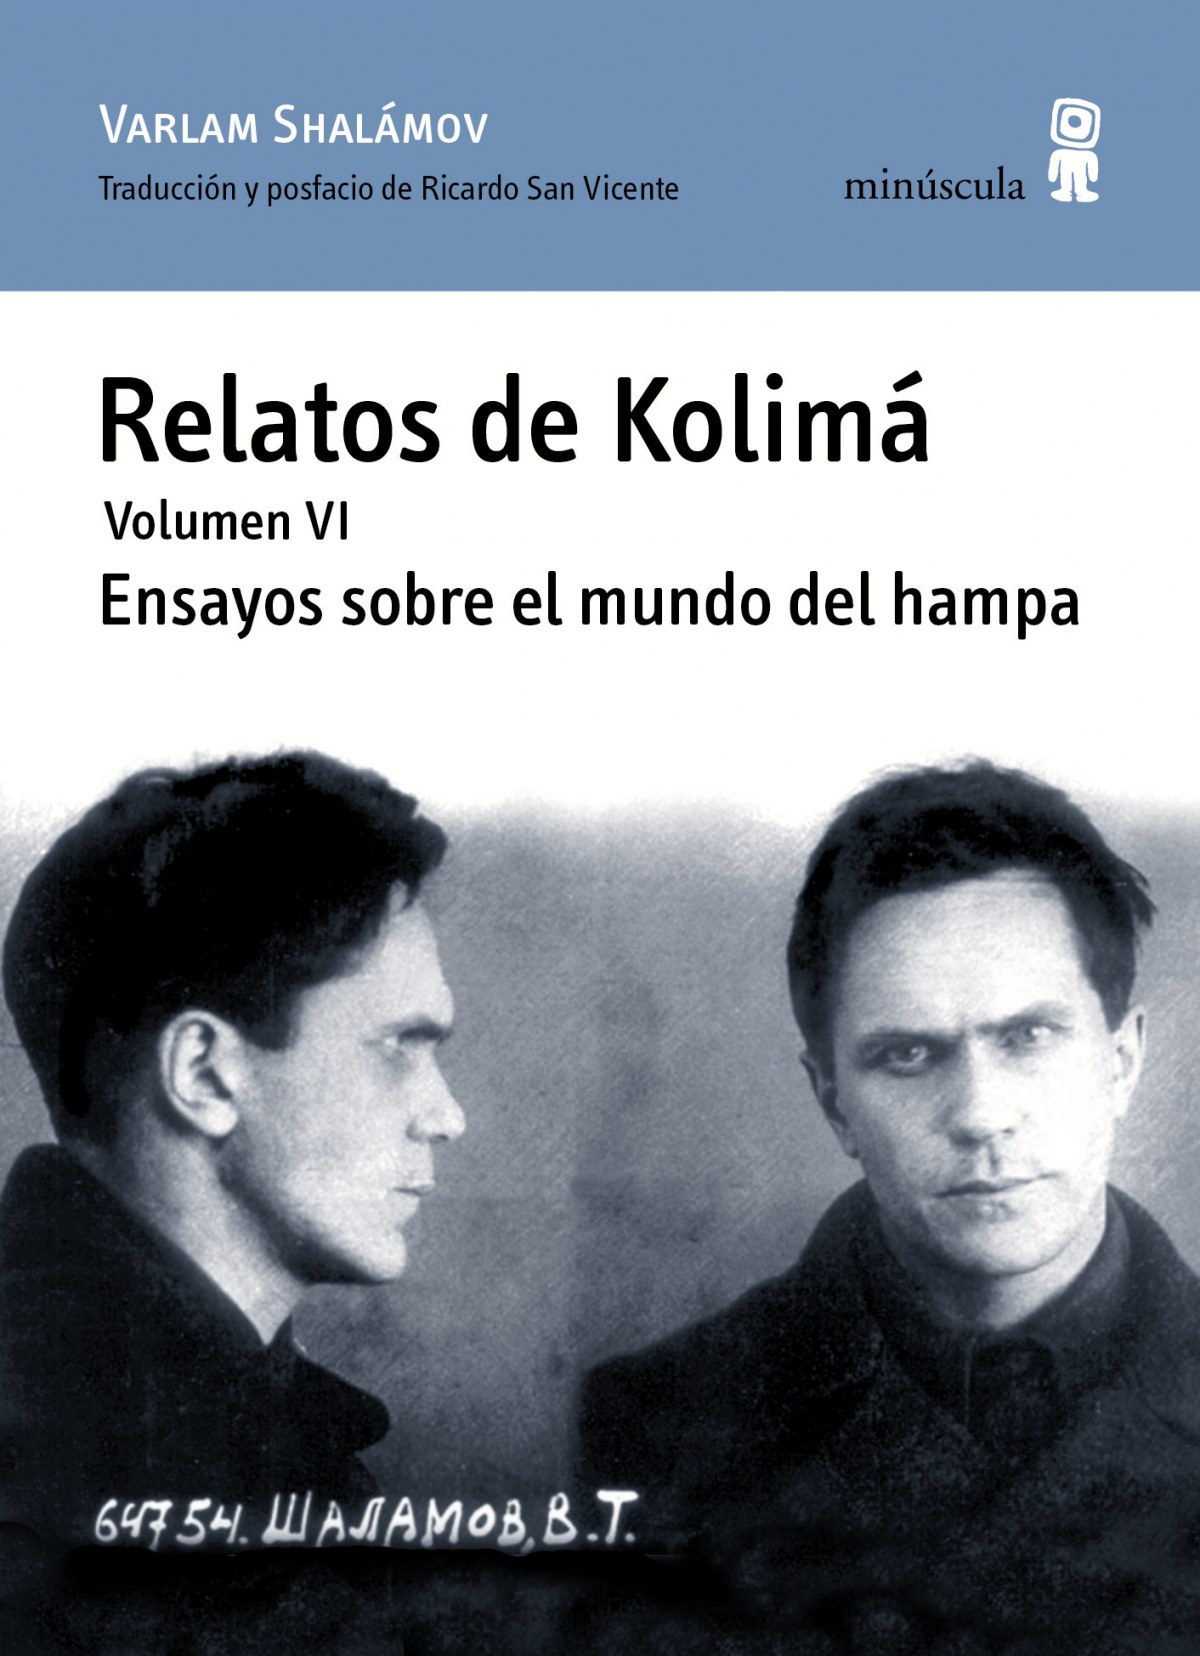 RELATOS DE KOLIMÁ. VOLumen VI